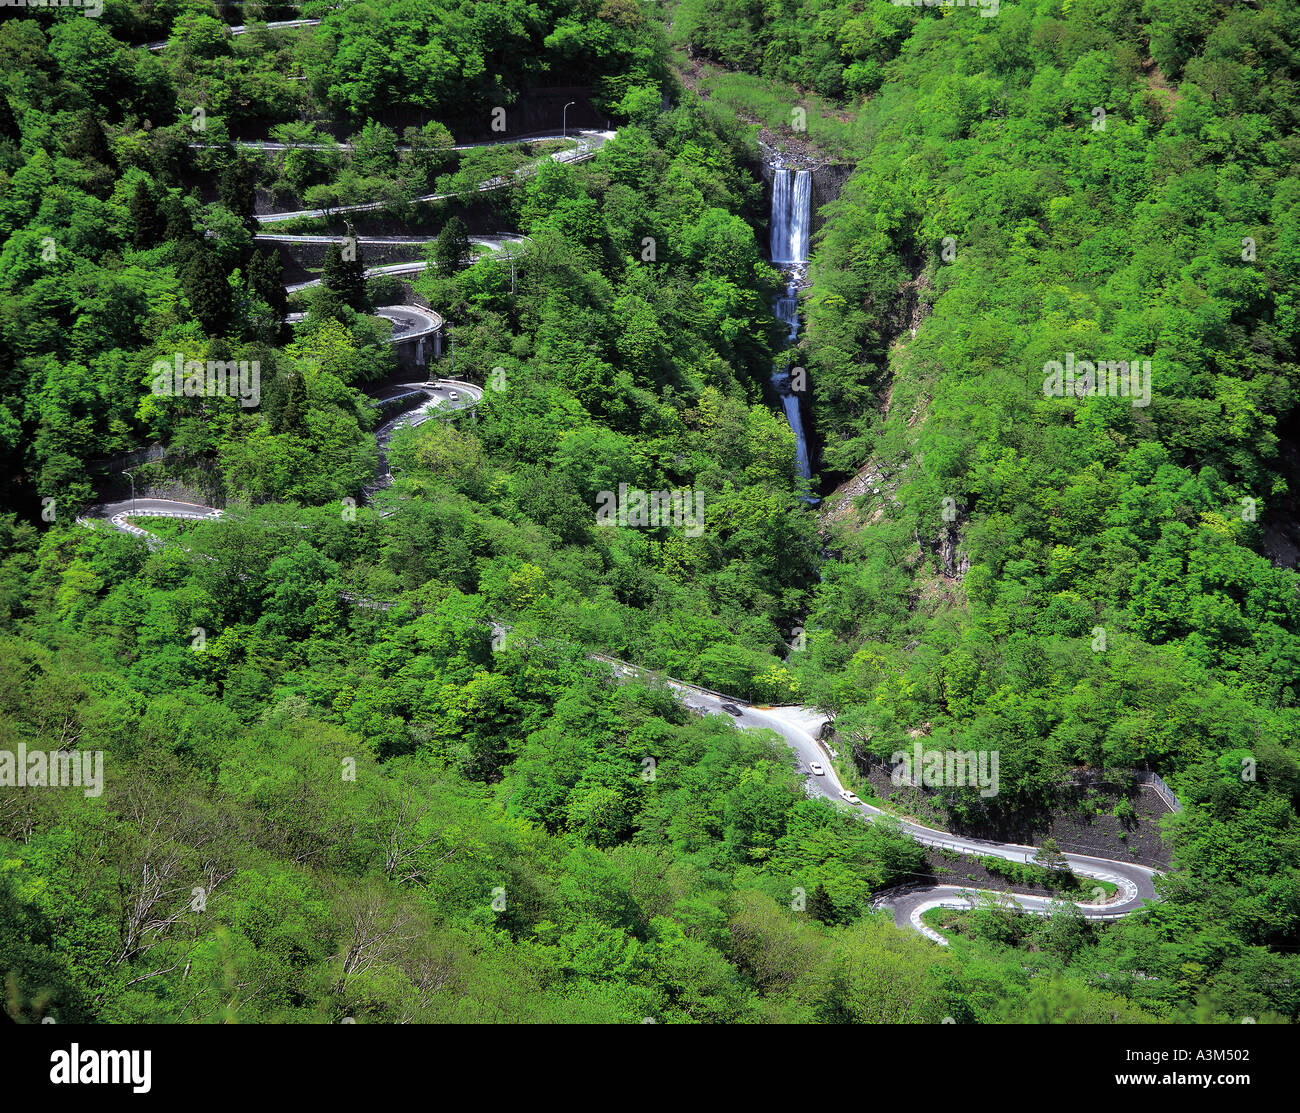 nature-road-trees-cars-water-forests-wat